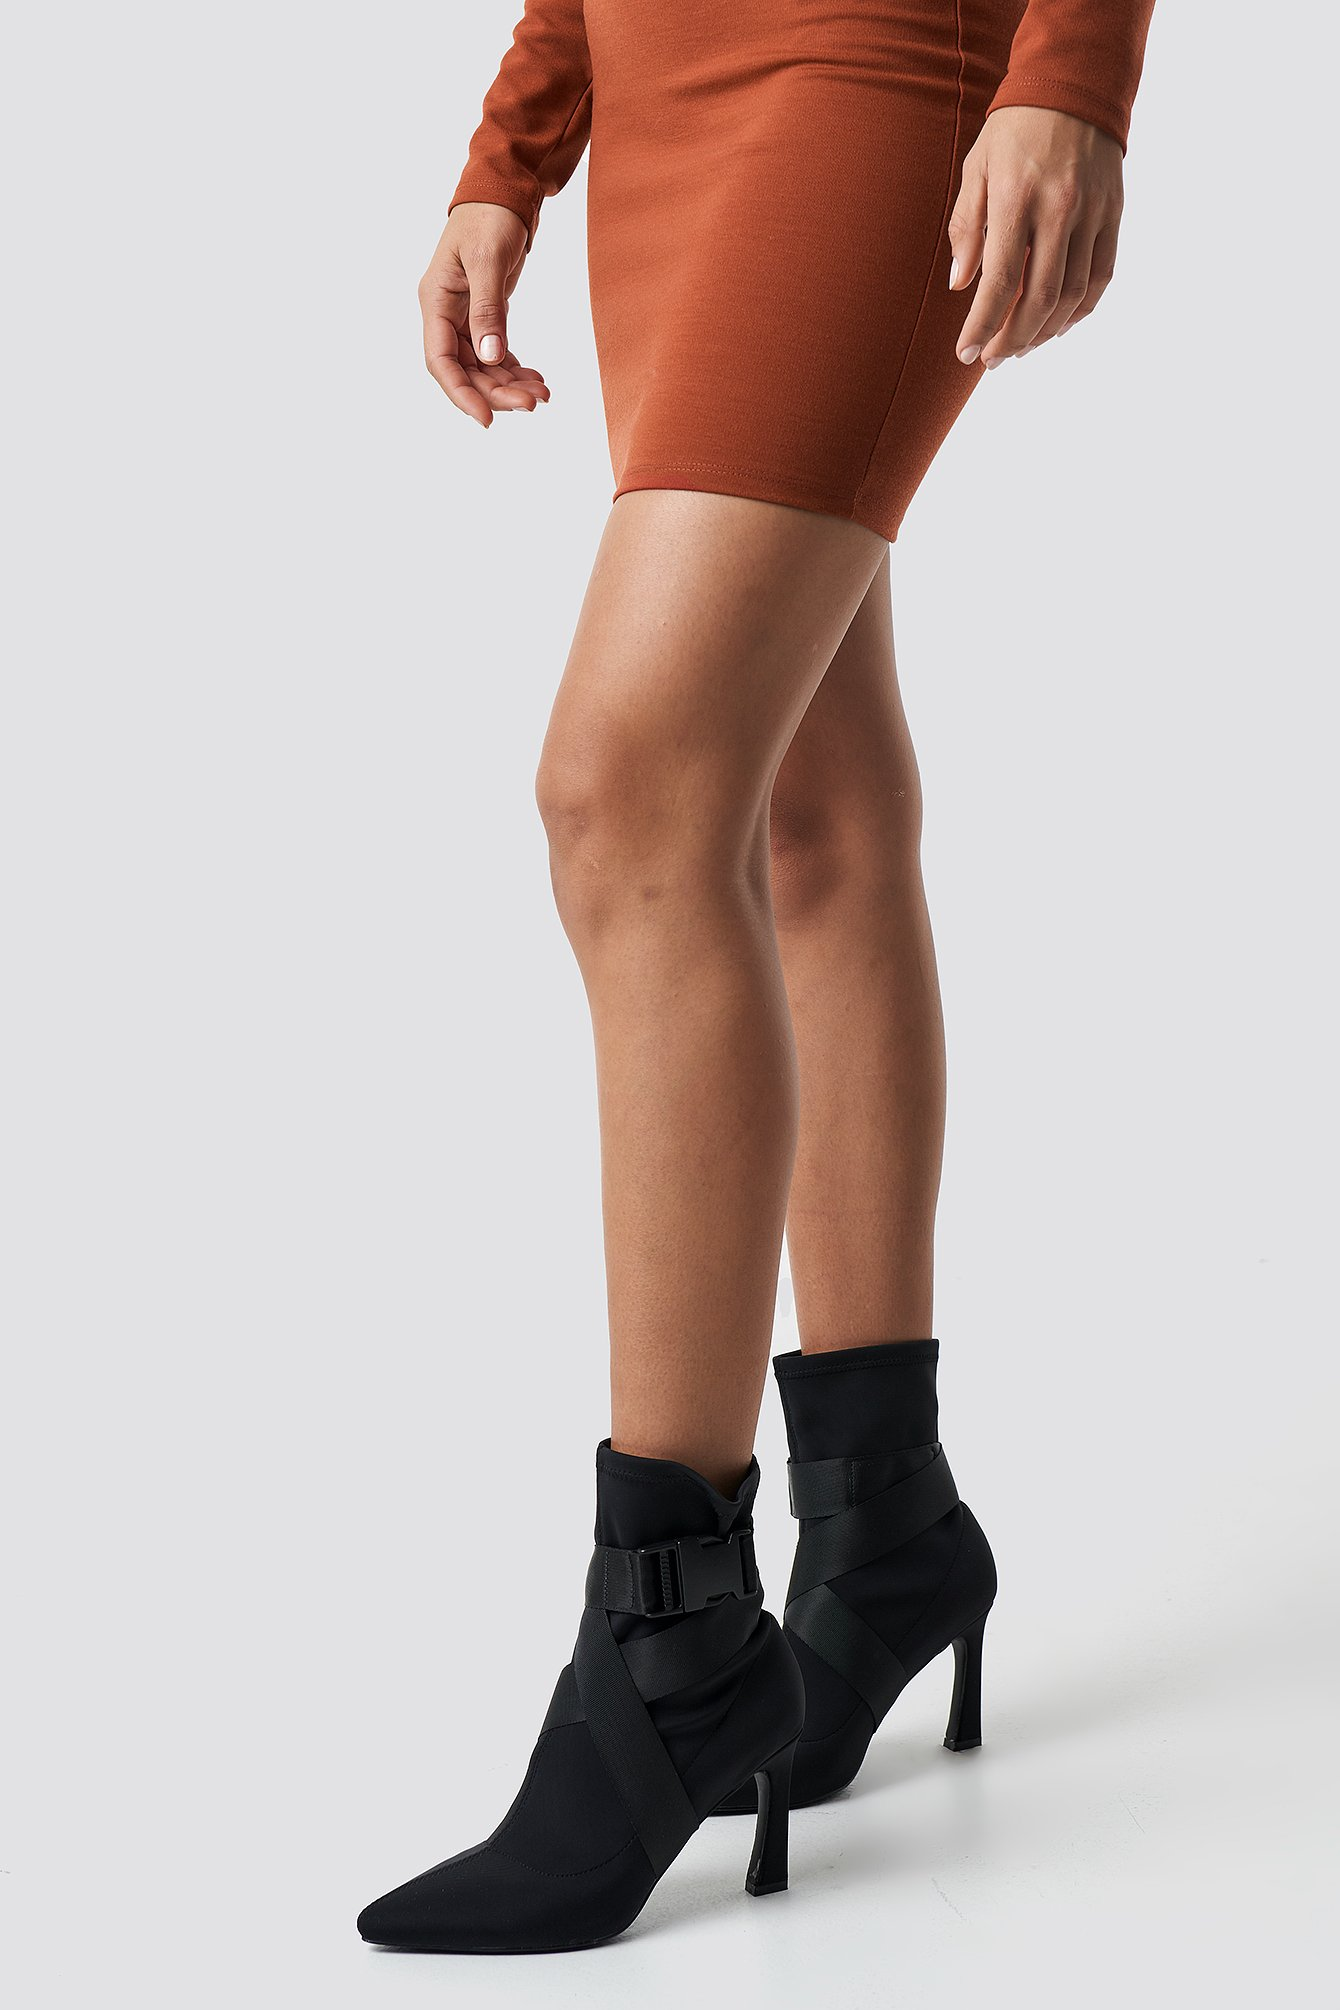 High Heel Belted Boots NA-KD.COM